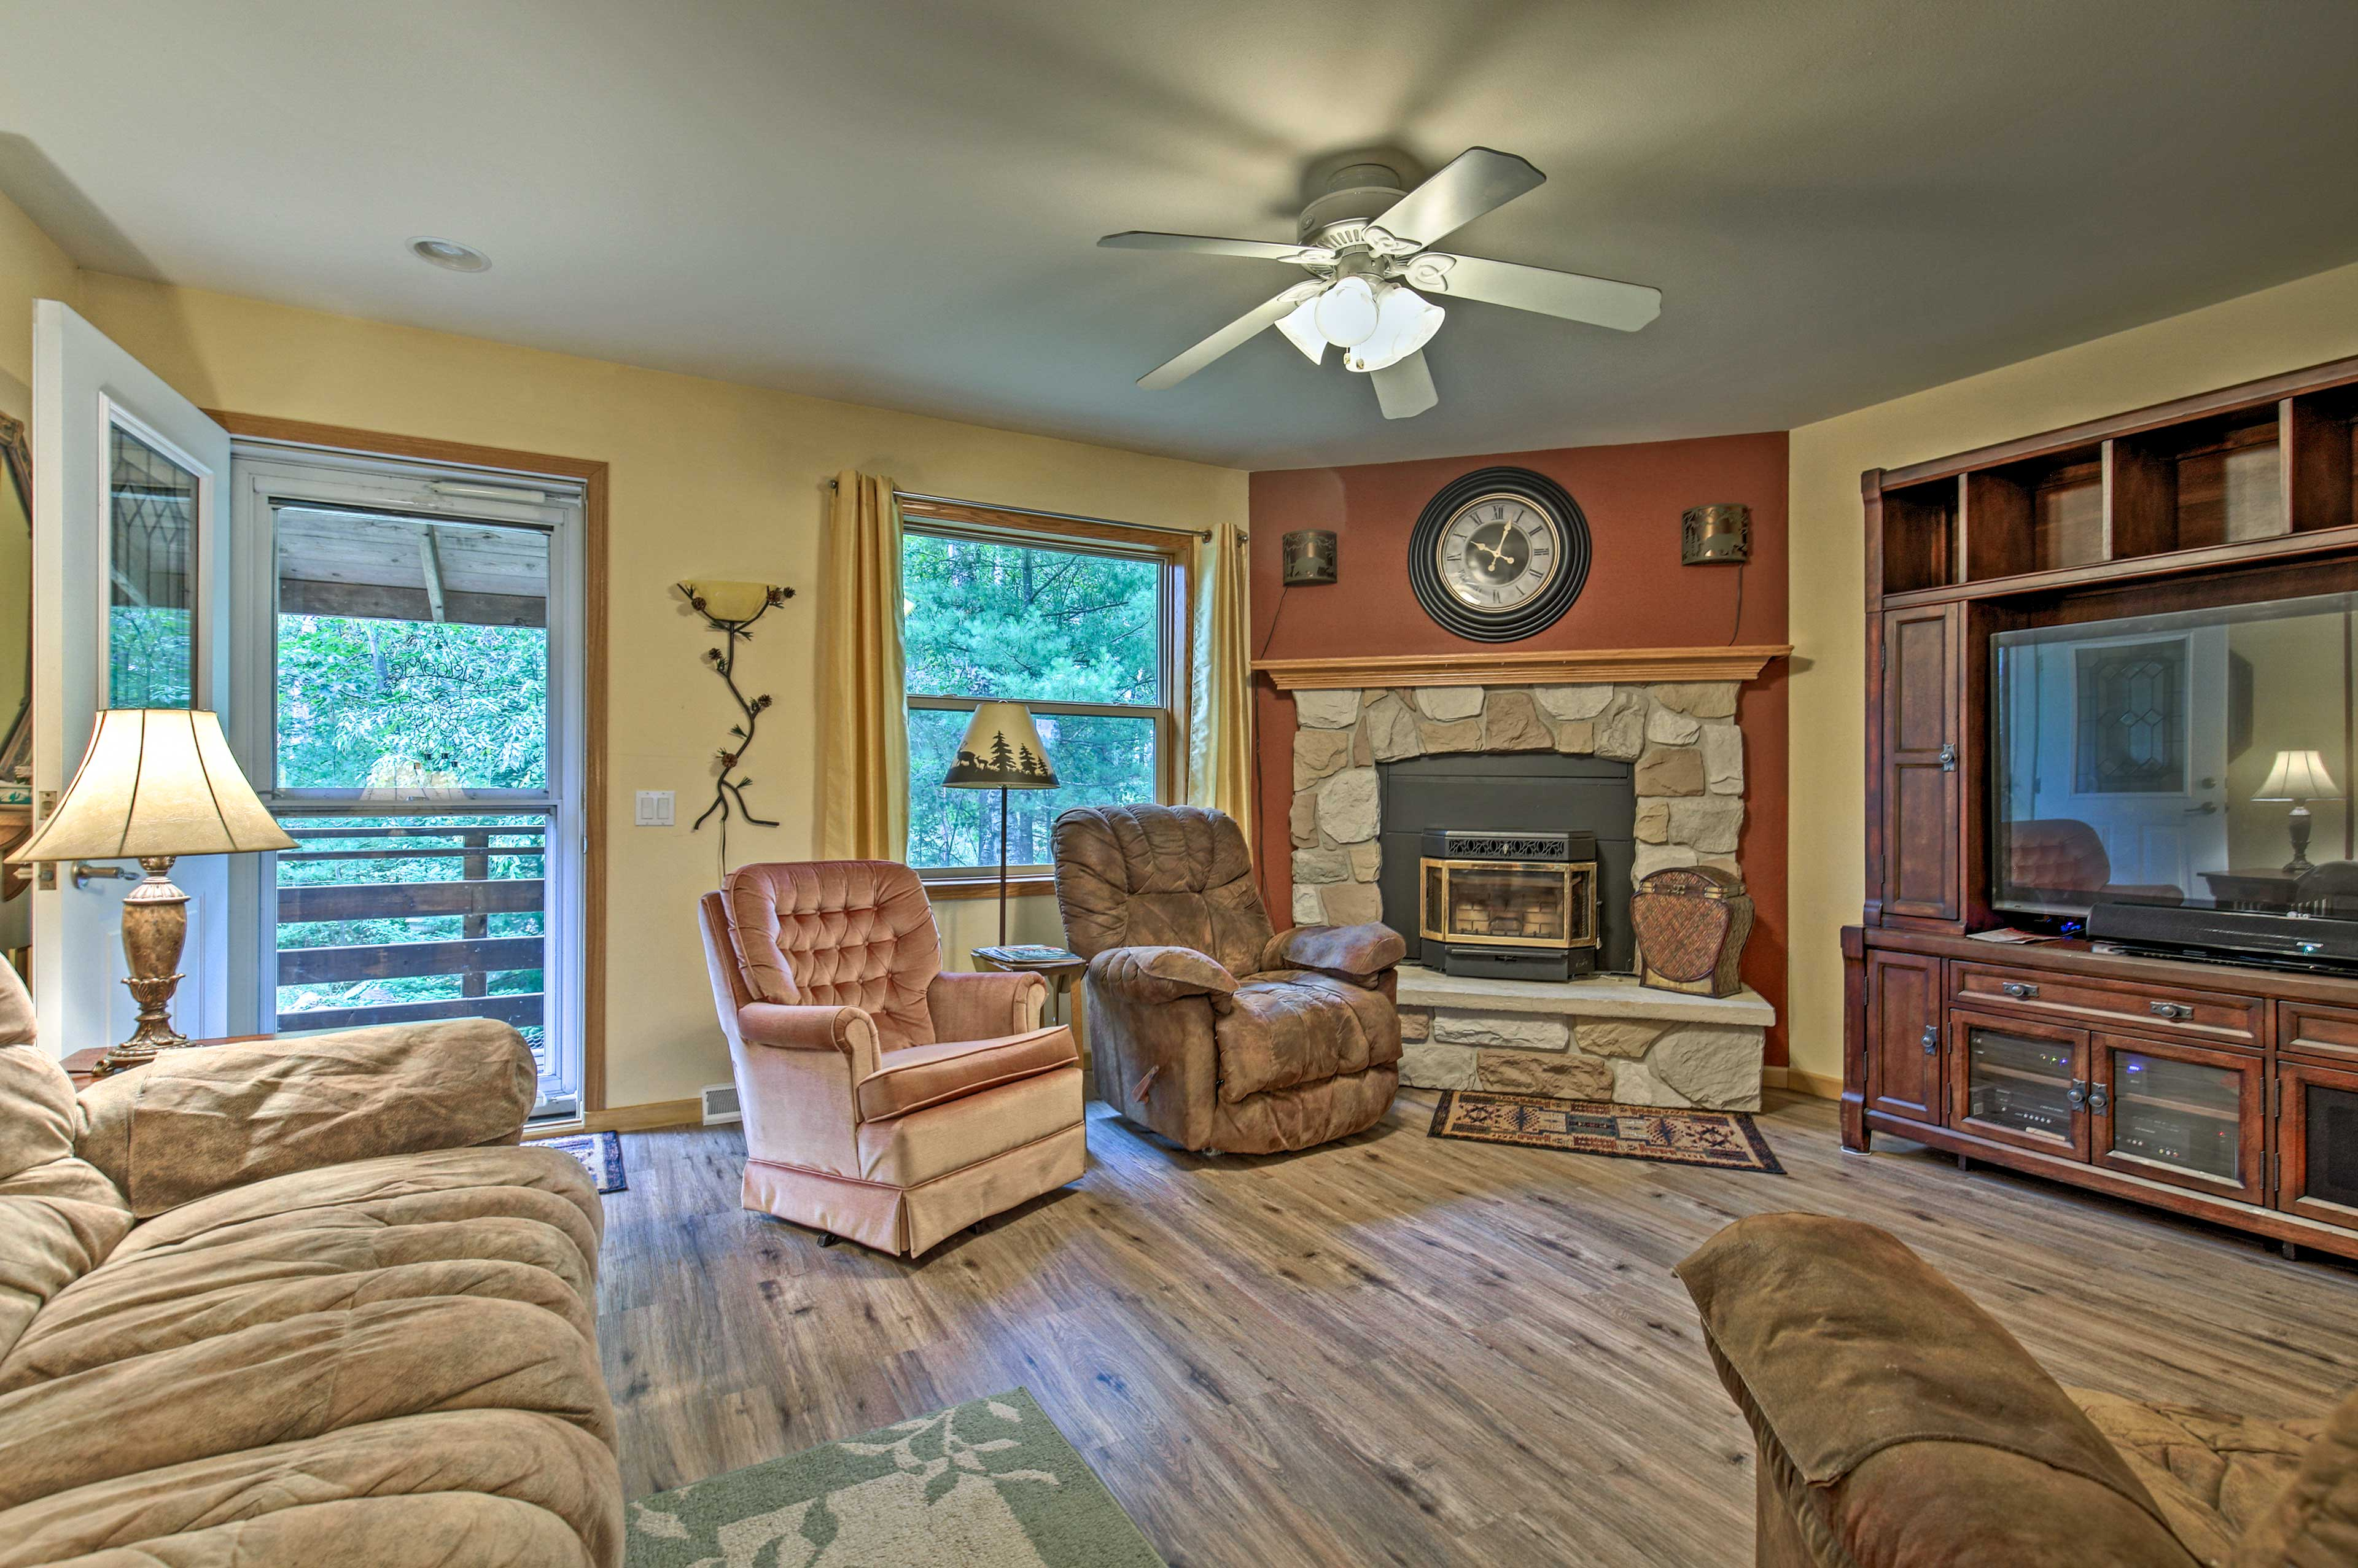 The living room has plenty of space to relax.